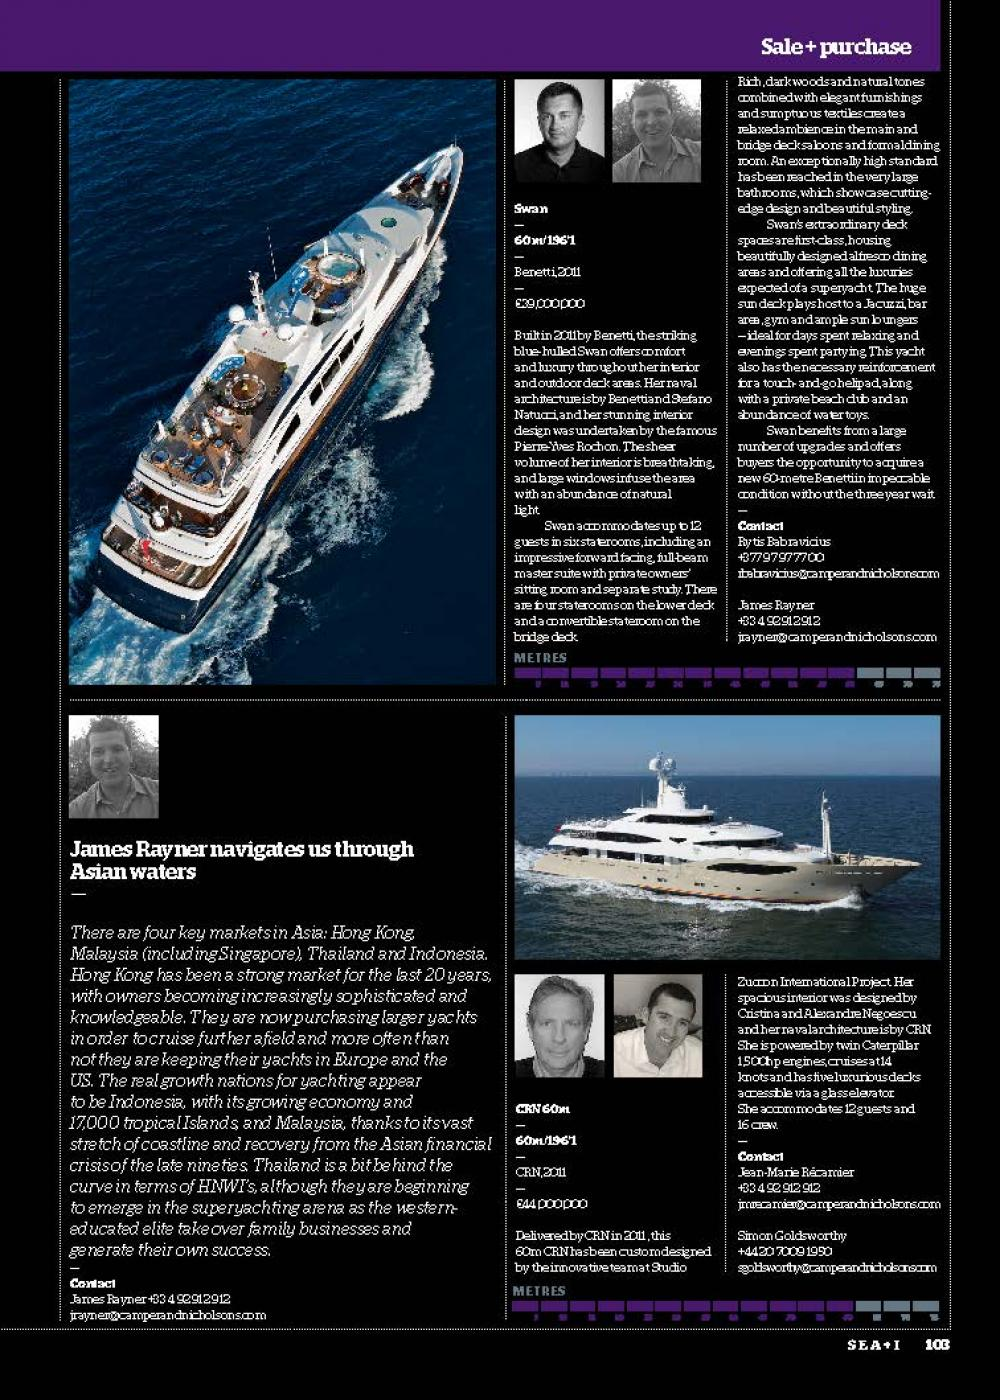 ISSUE 26 - SEA+I - Page 105 | C&N